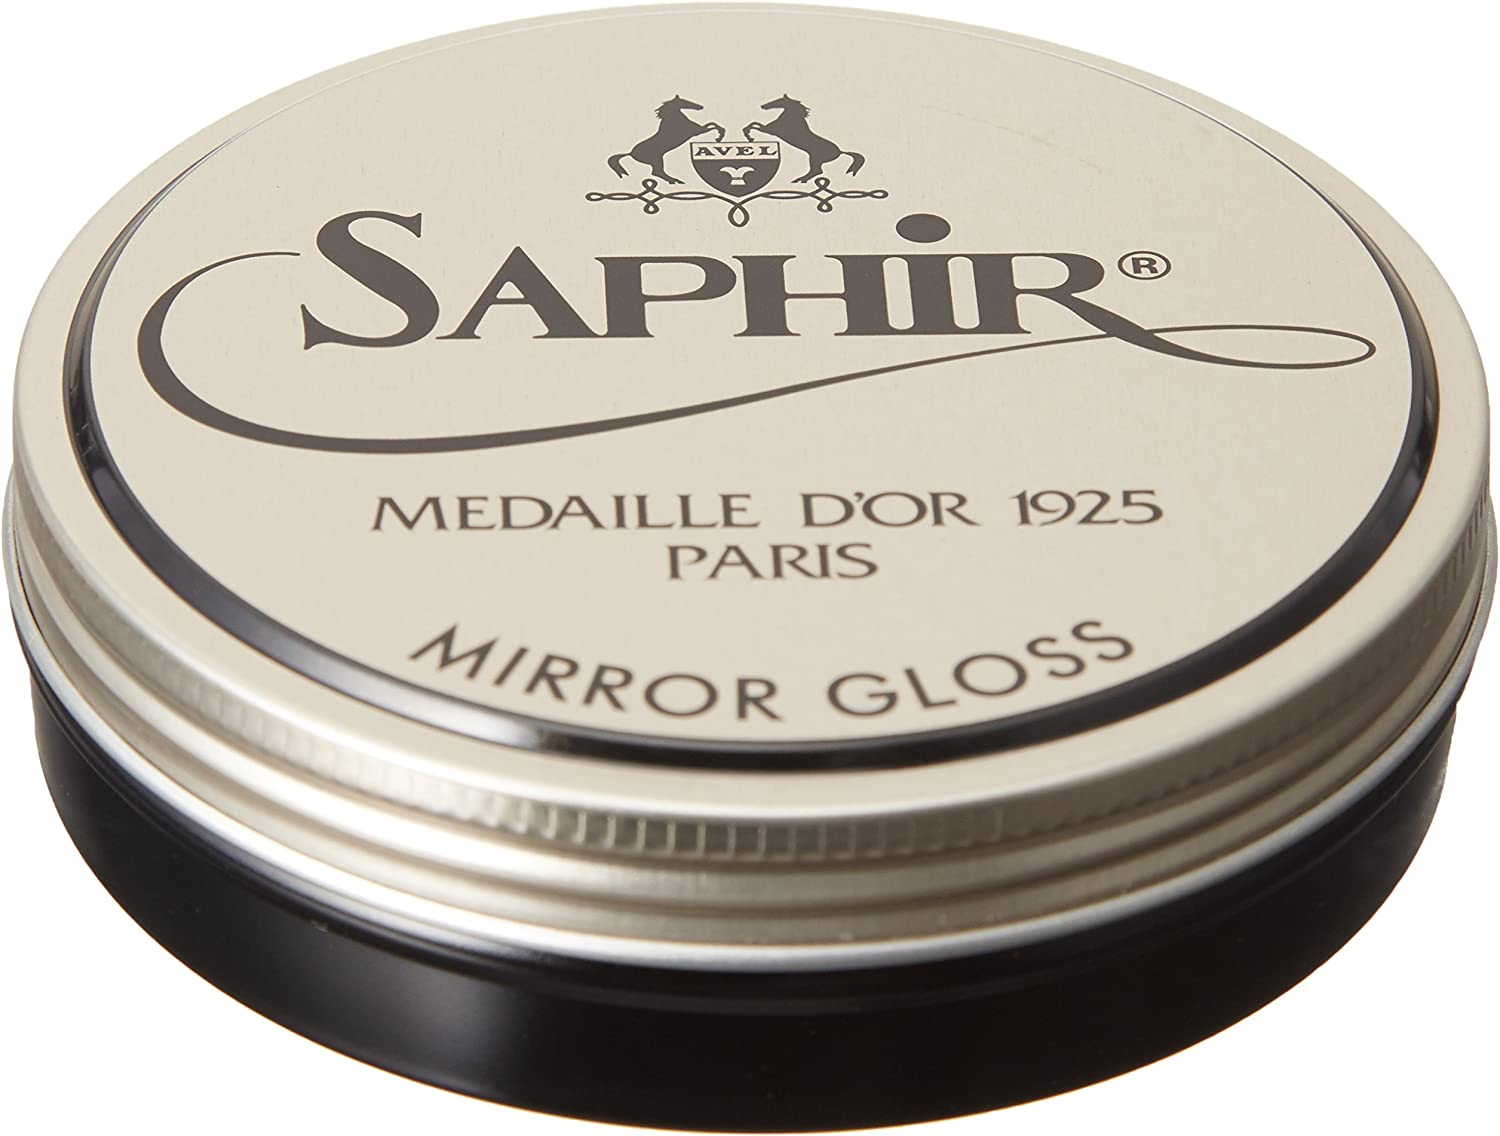 Saphir Medaille d'Or Mirror Gloss - Natural Wax Polish for Leather Shoes & Boots